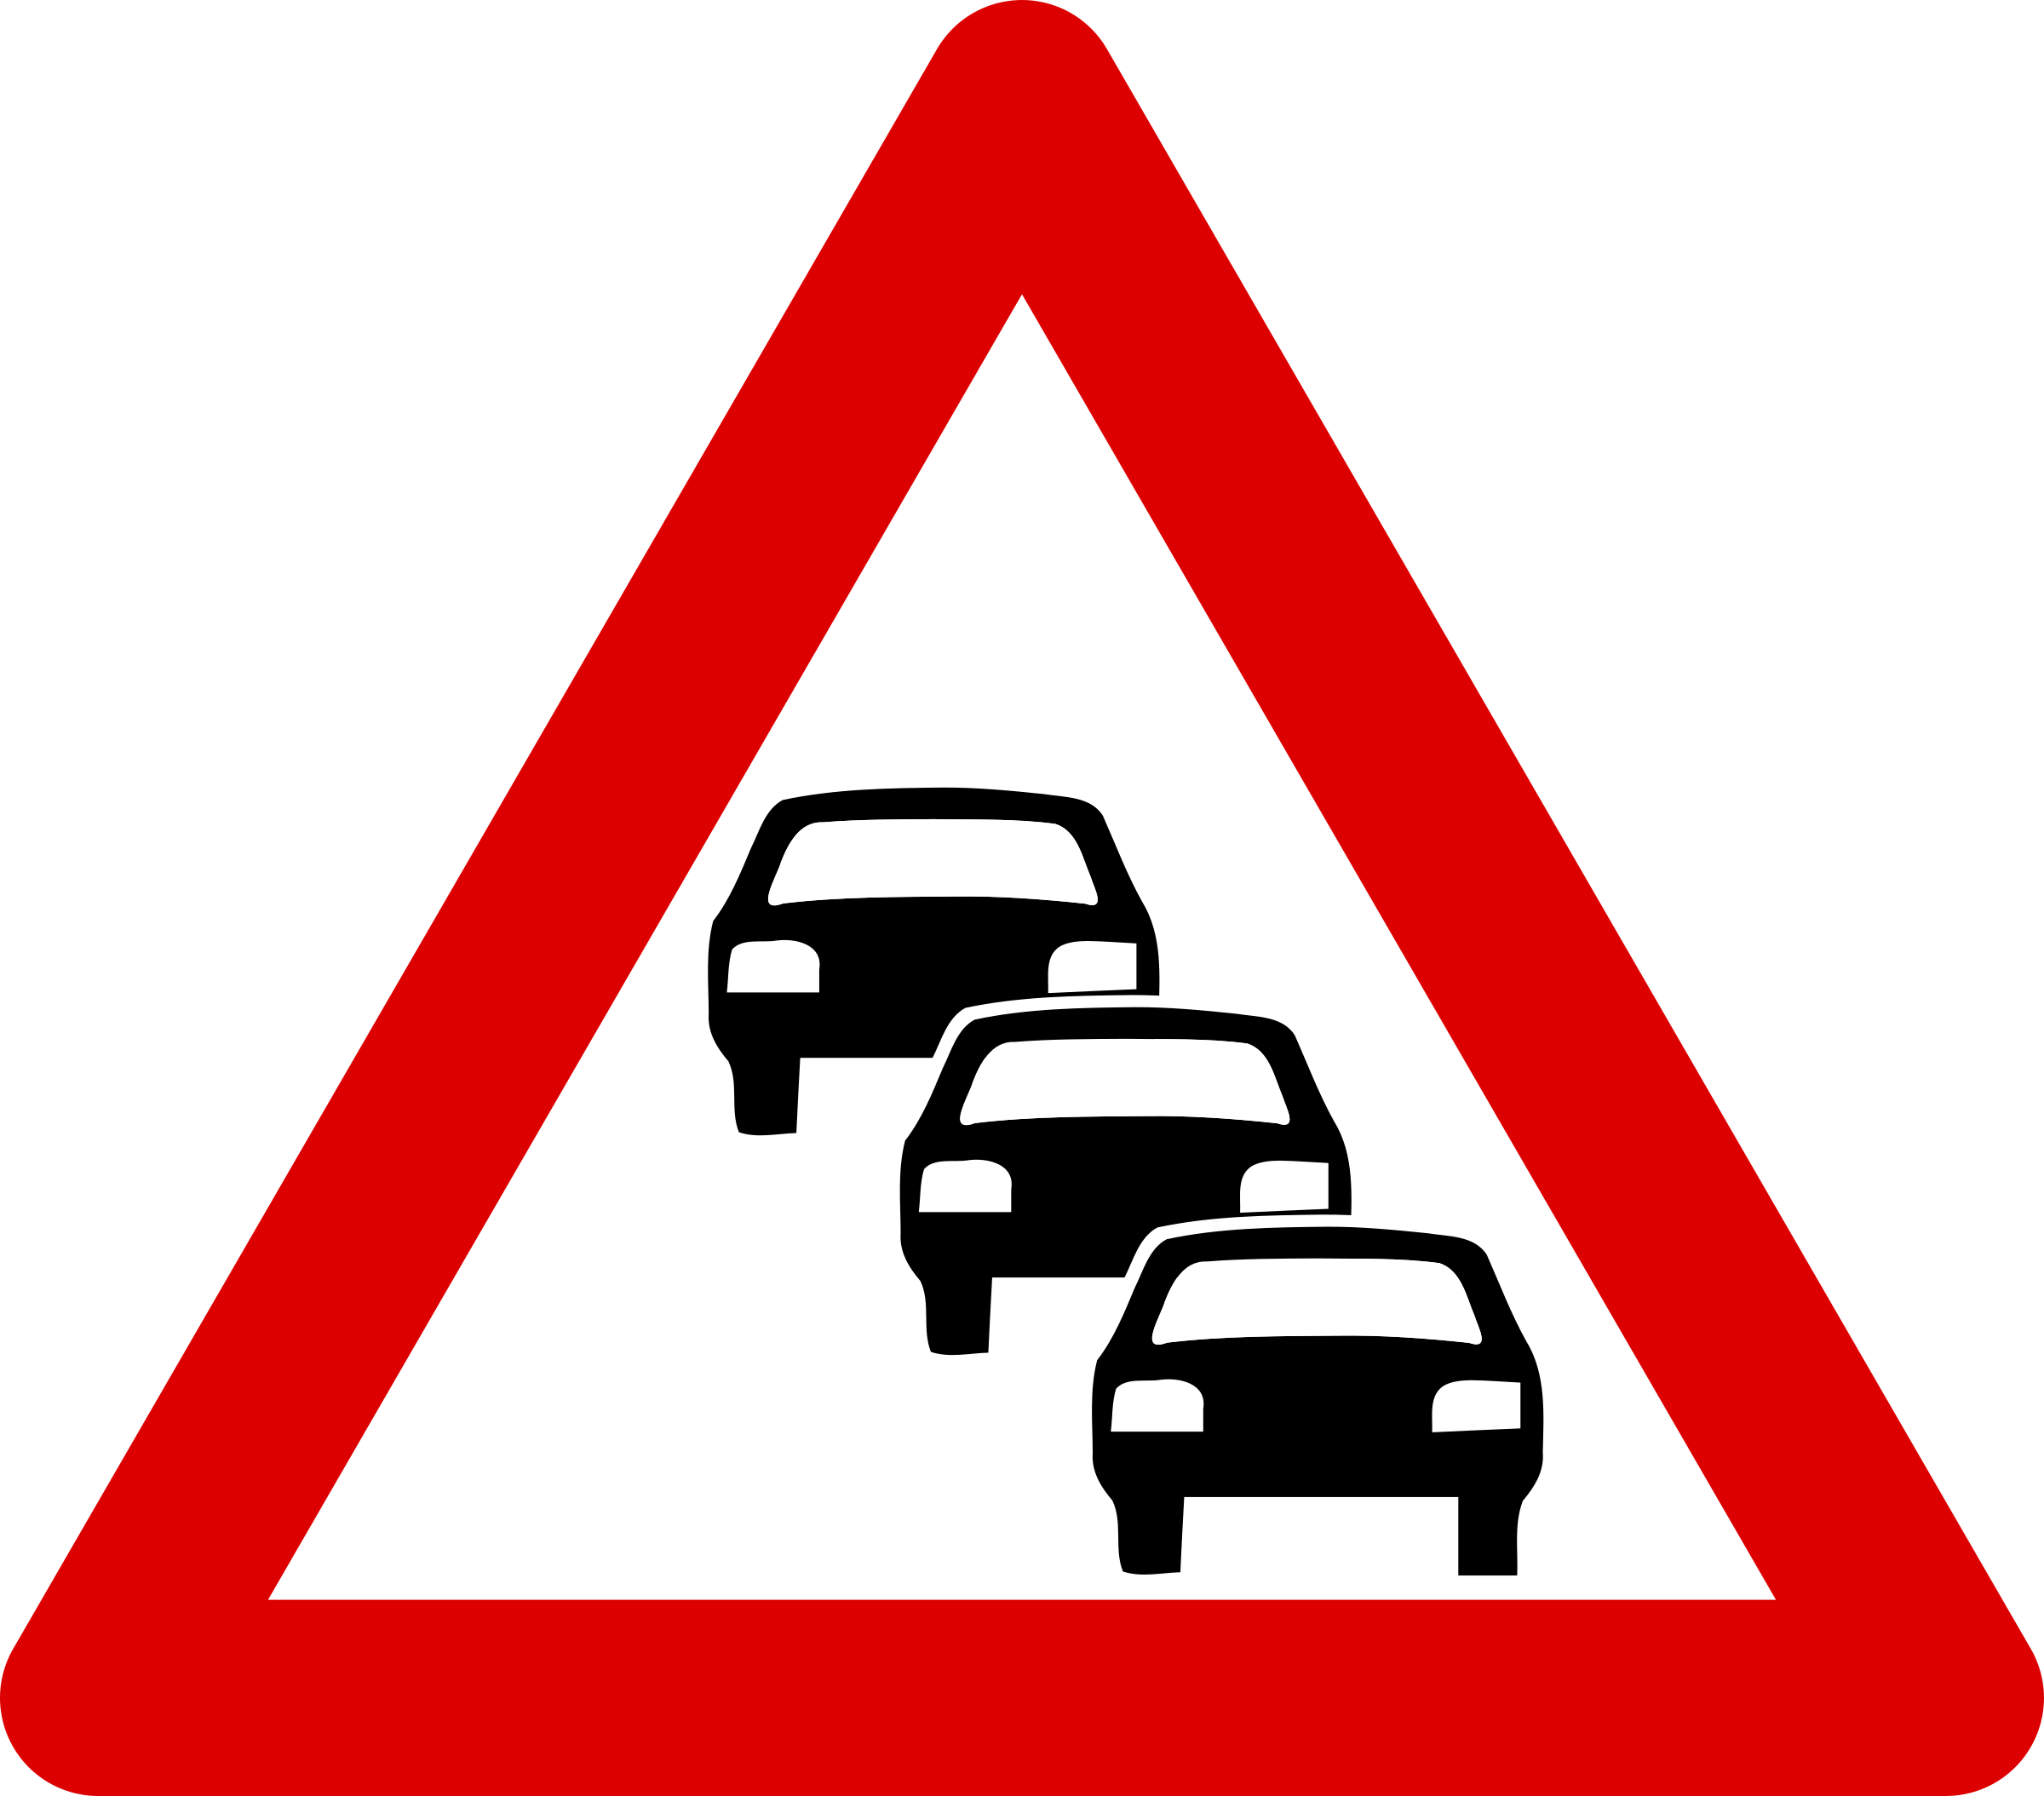 png freeuse stock Traffic clipart. Sign big image png